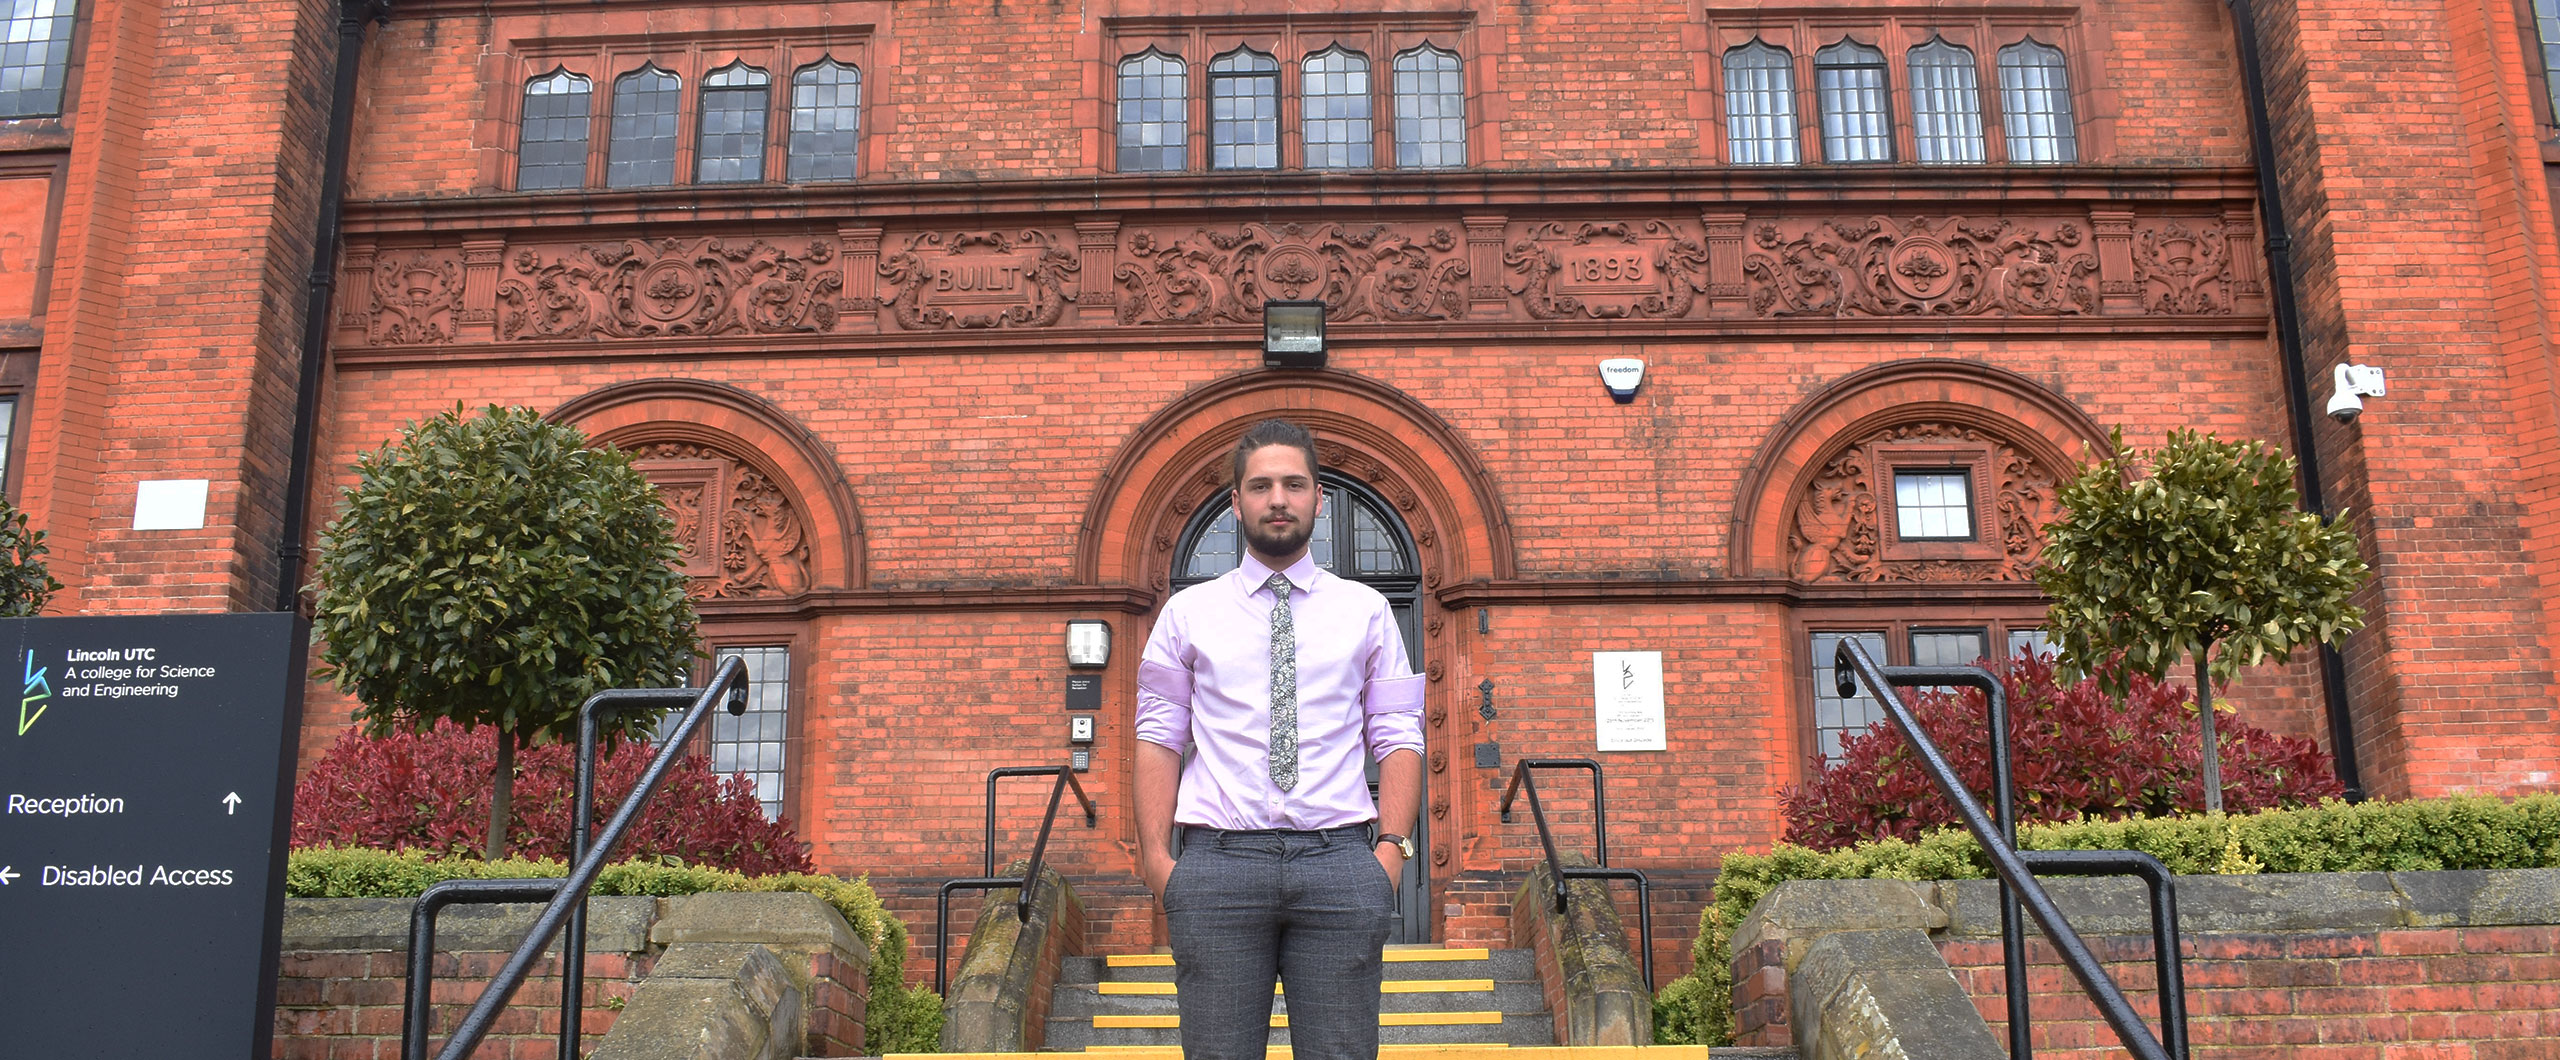 Meet the UTC student up for local election